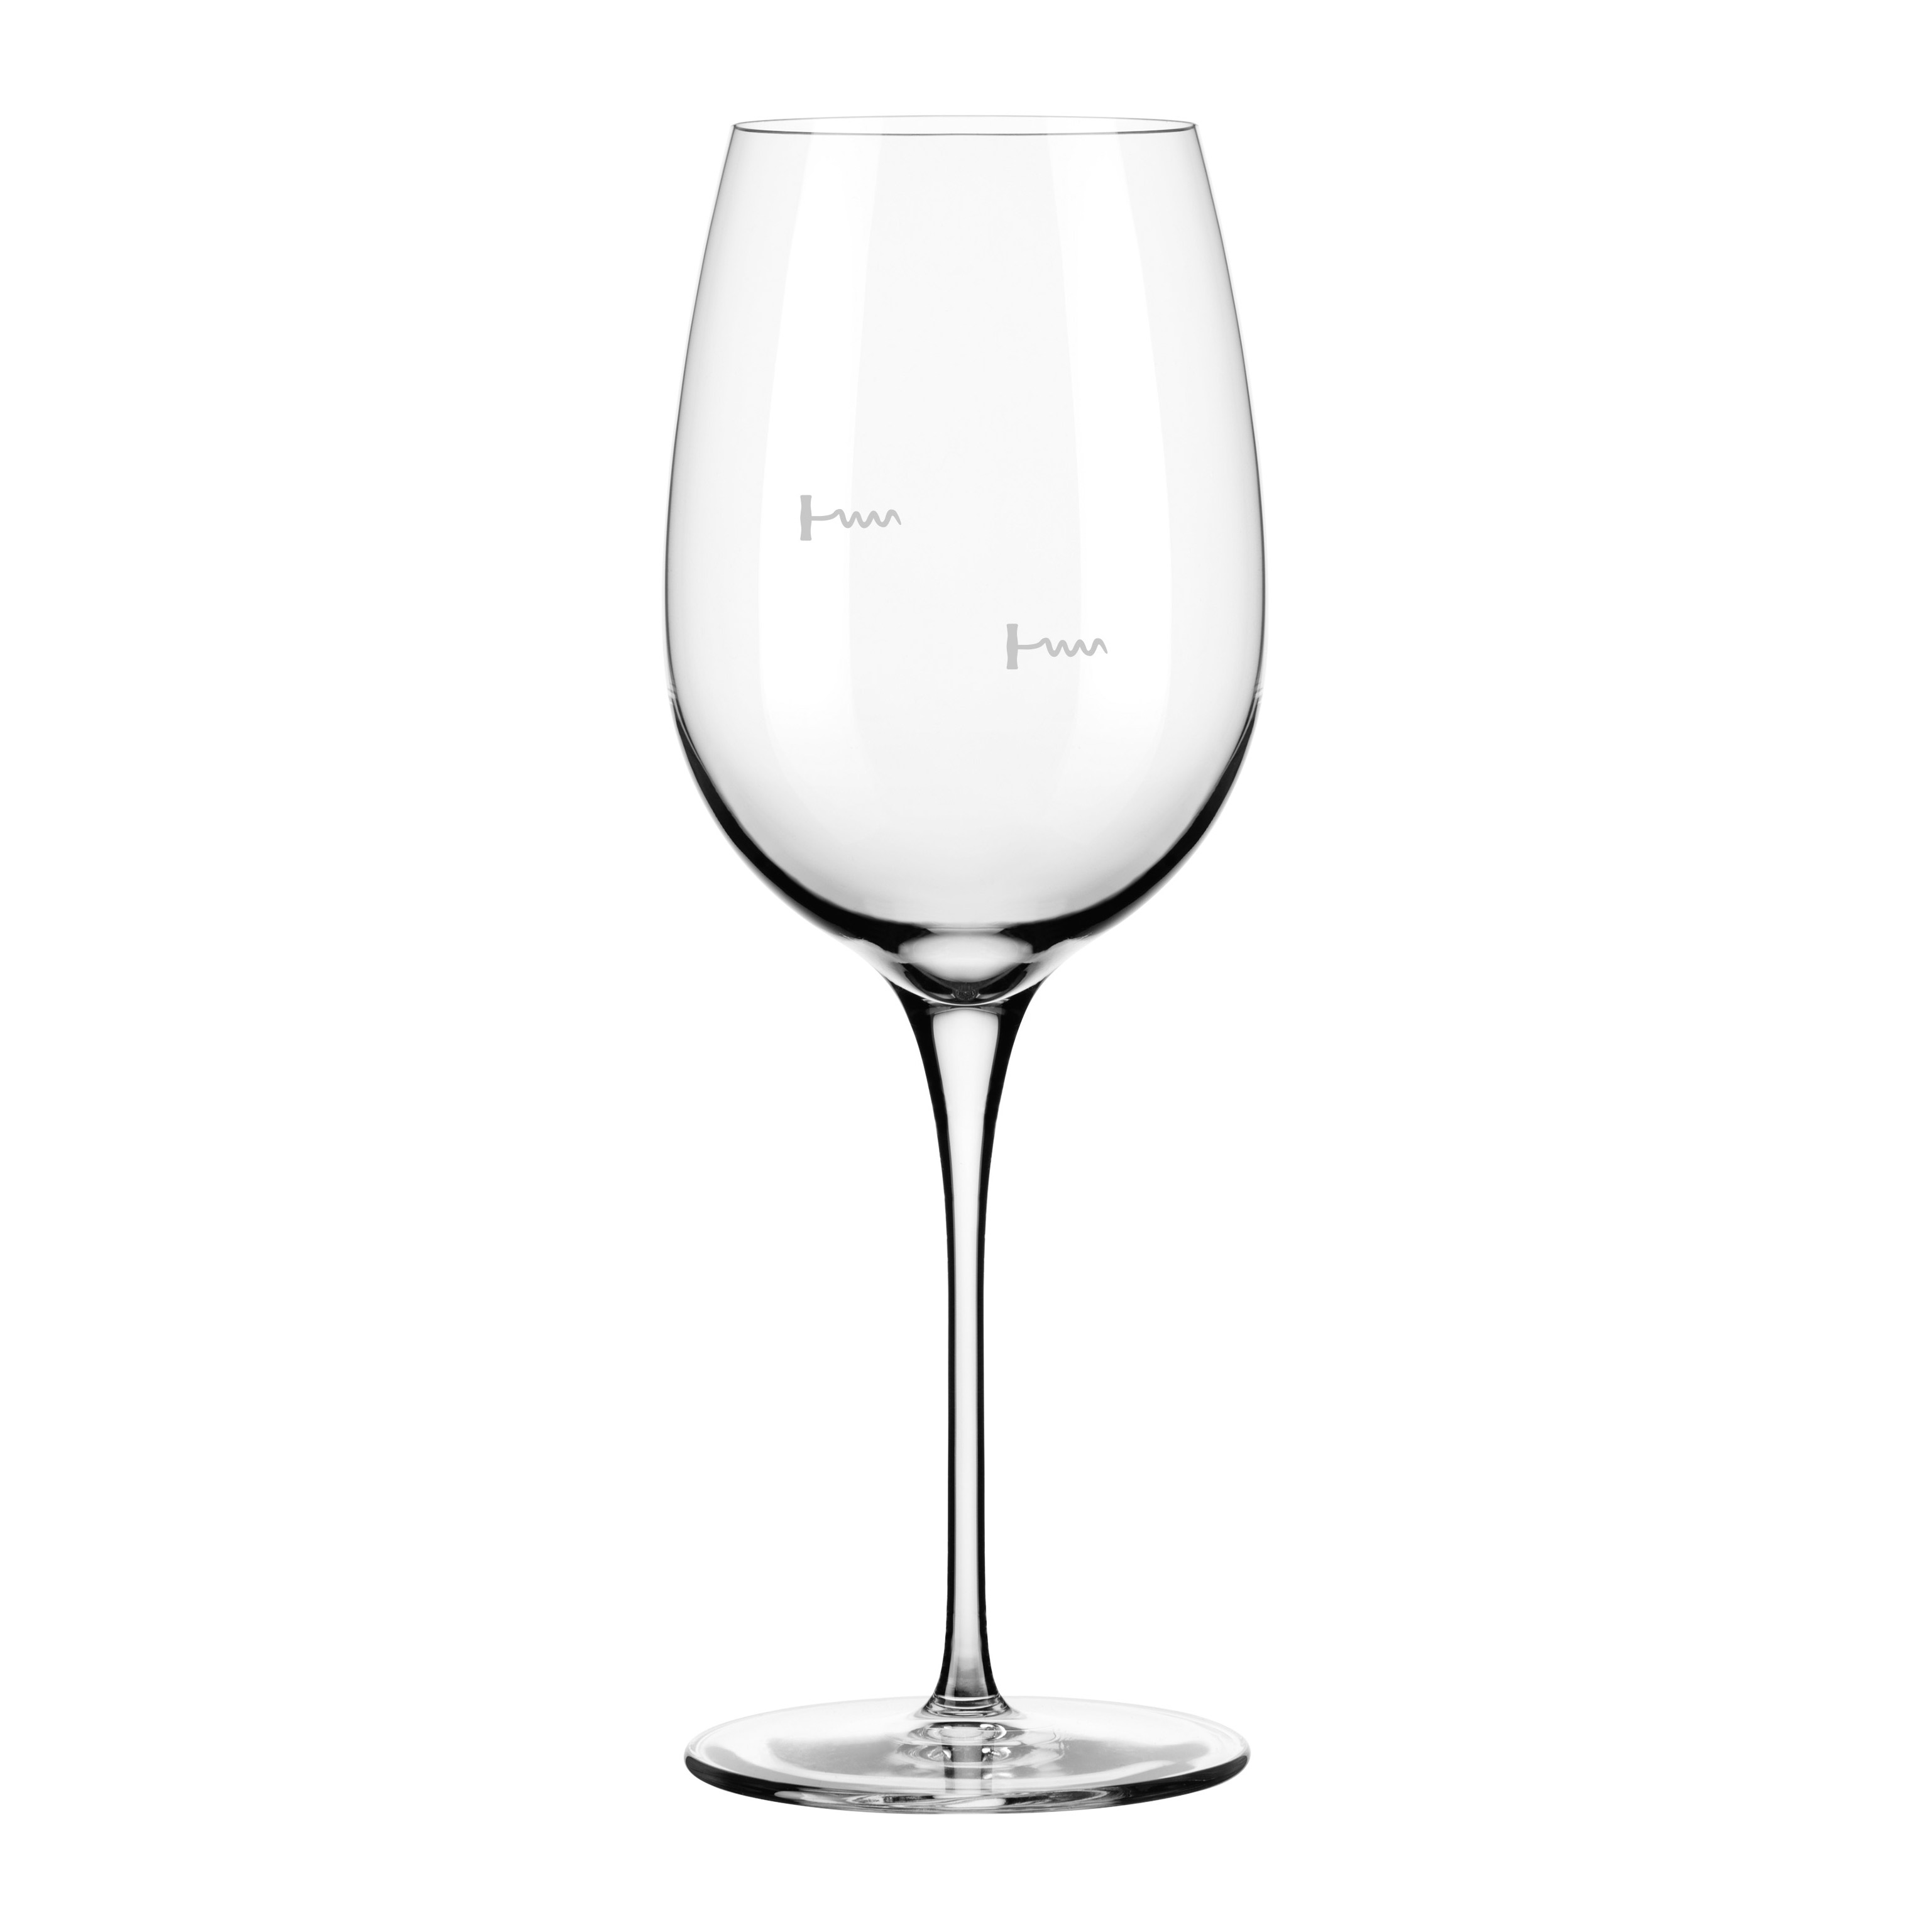 Libbey Glass 9123/U223A glass, wine